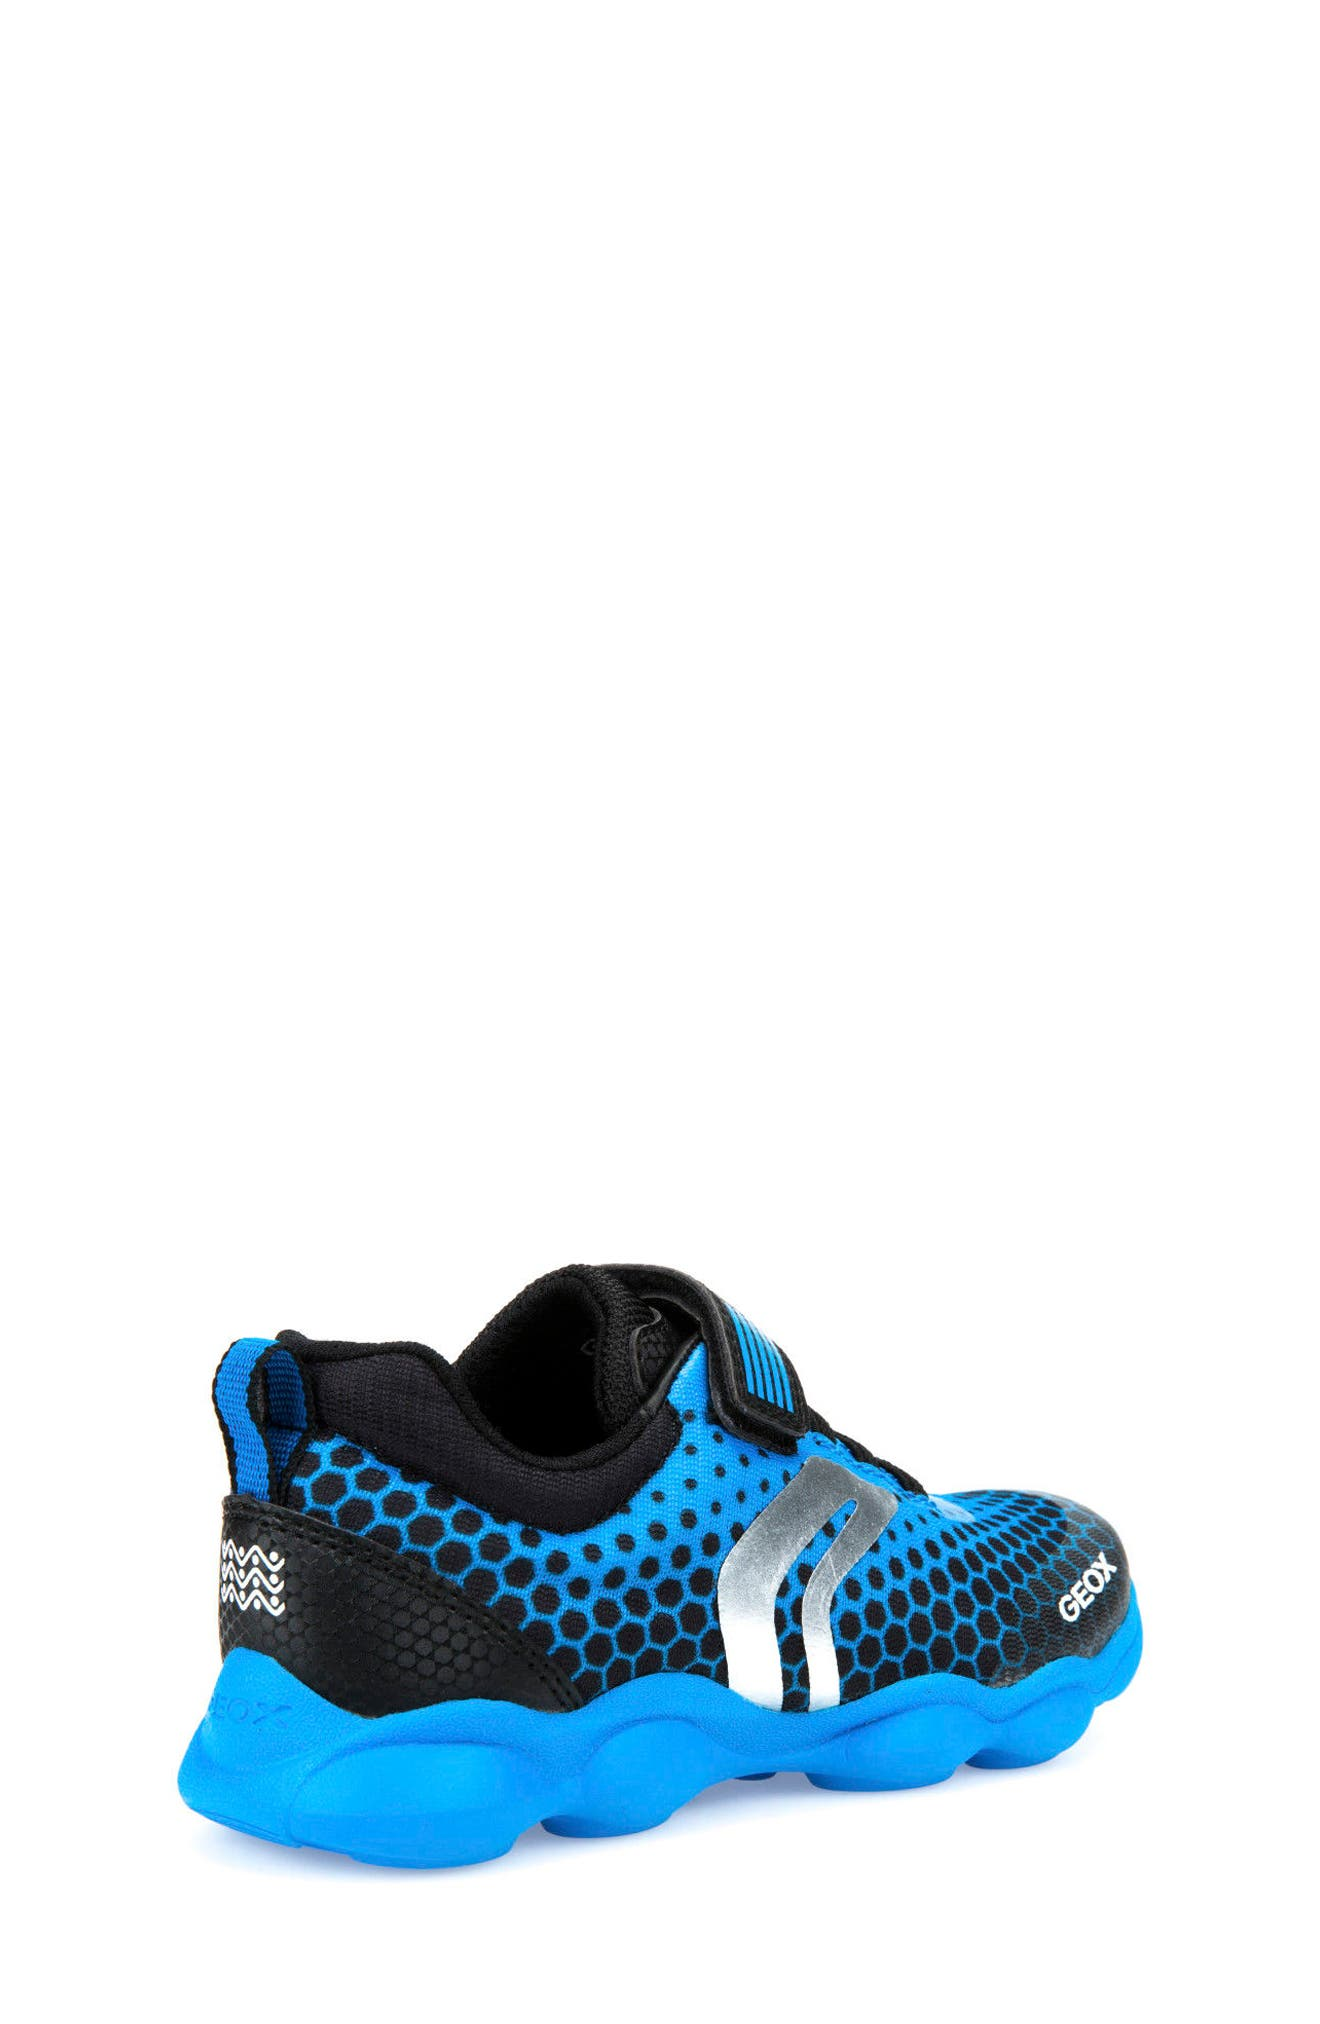 Munfrey Sneaker,                             Alternate thumbnail 7, color,                             Light Blue/ Black